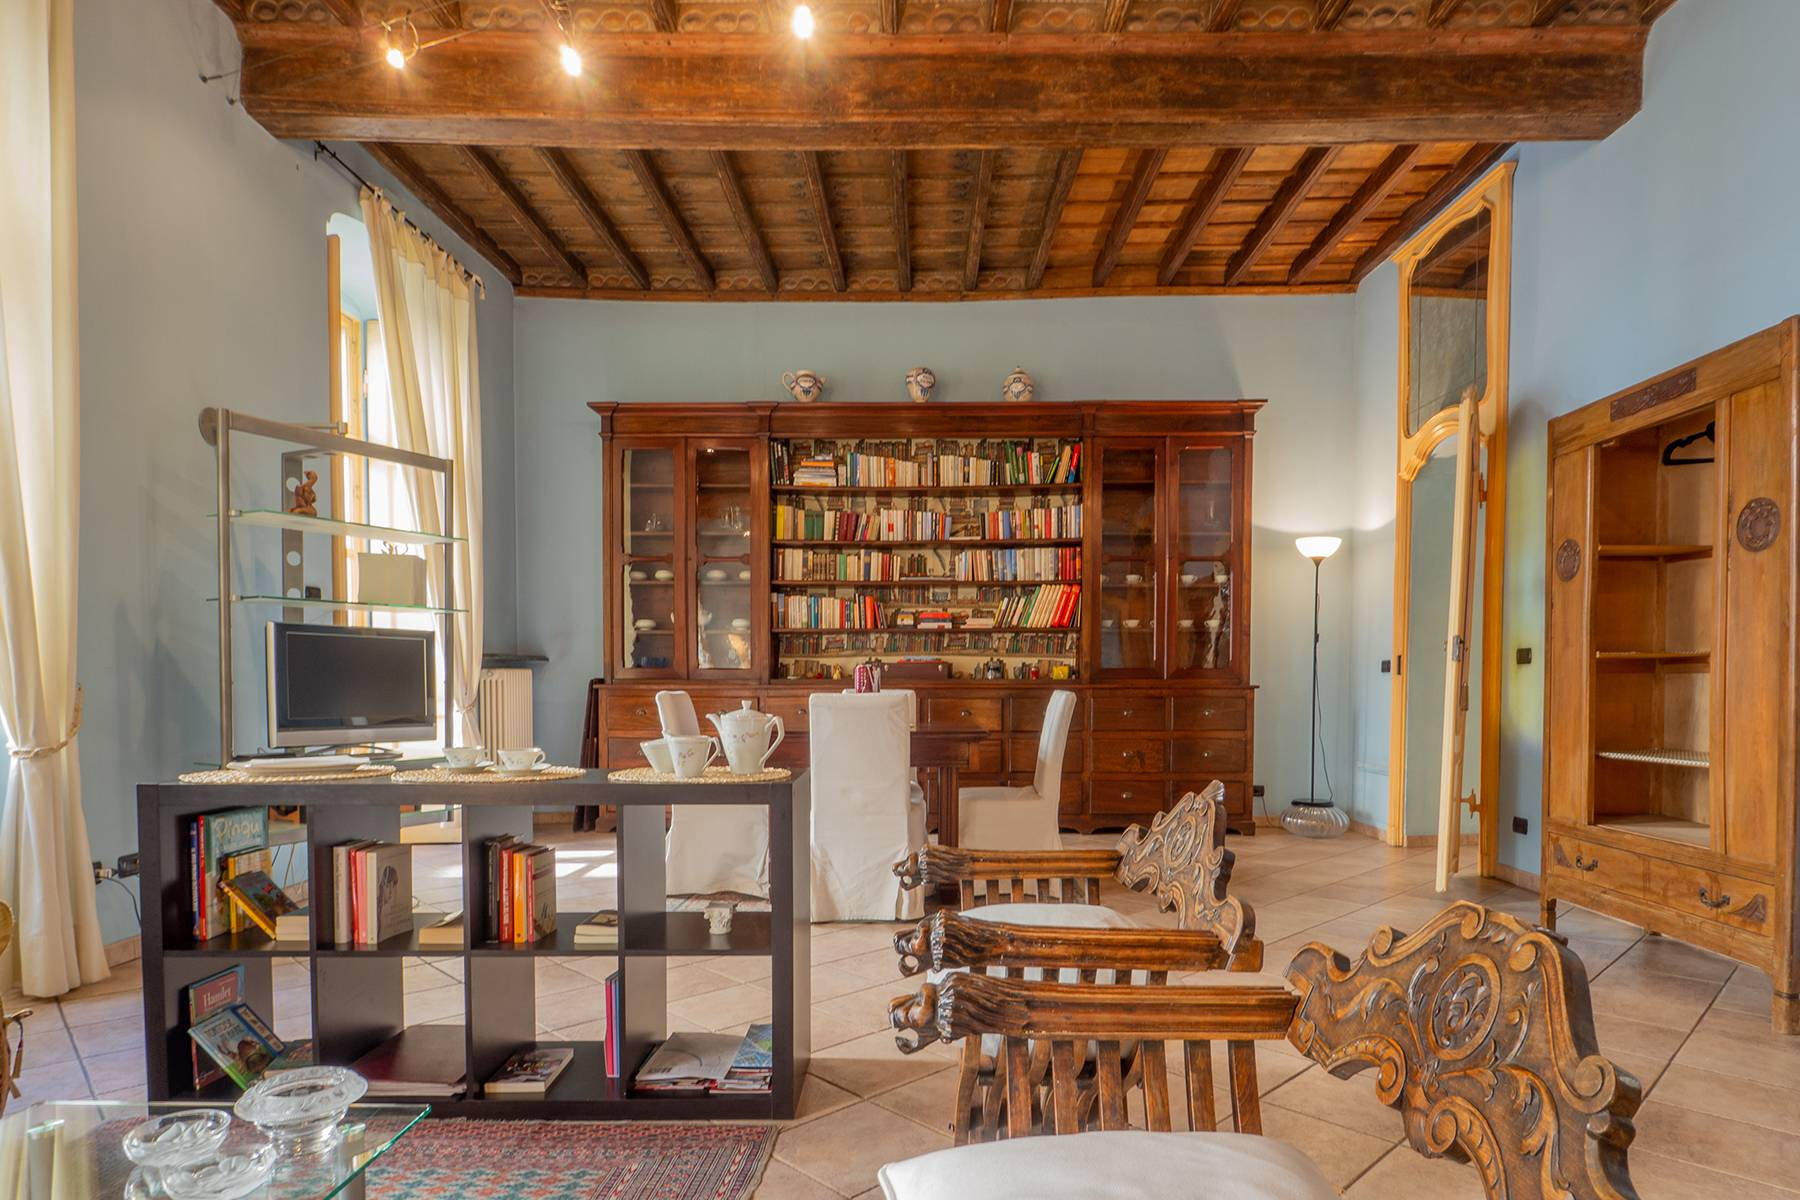 Bright charming apartment in a period building - 6